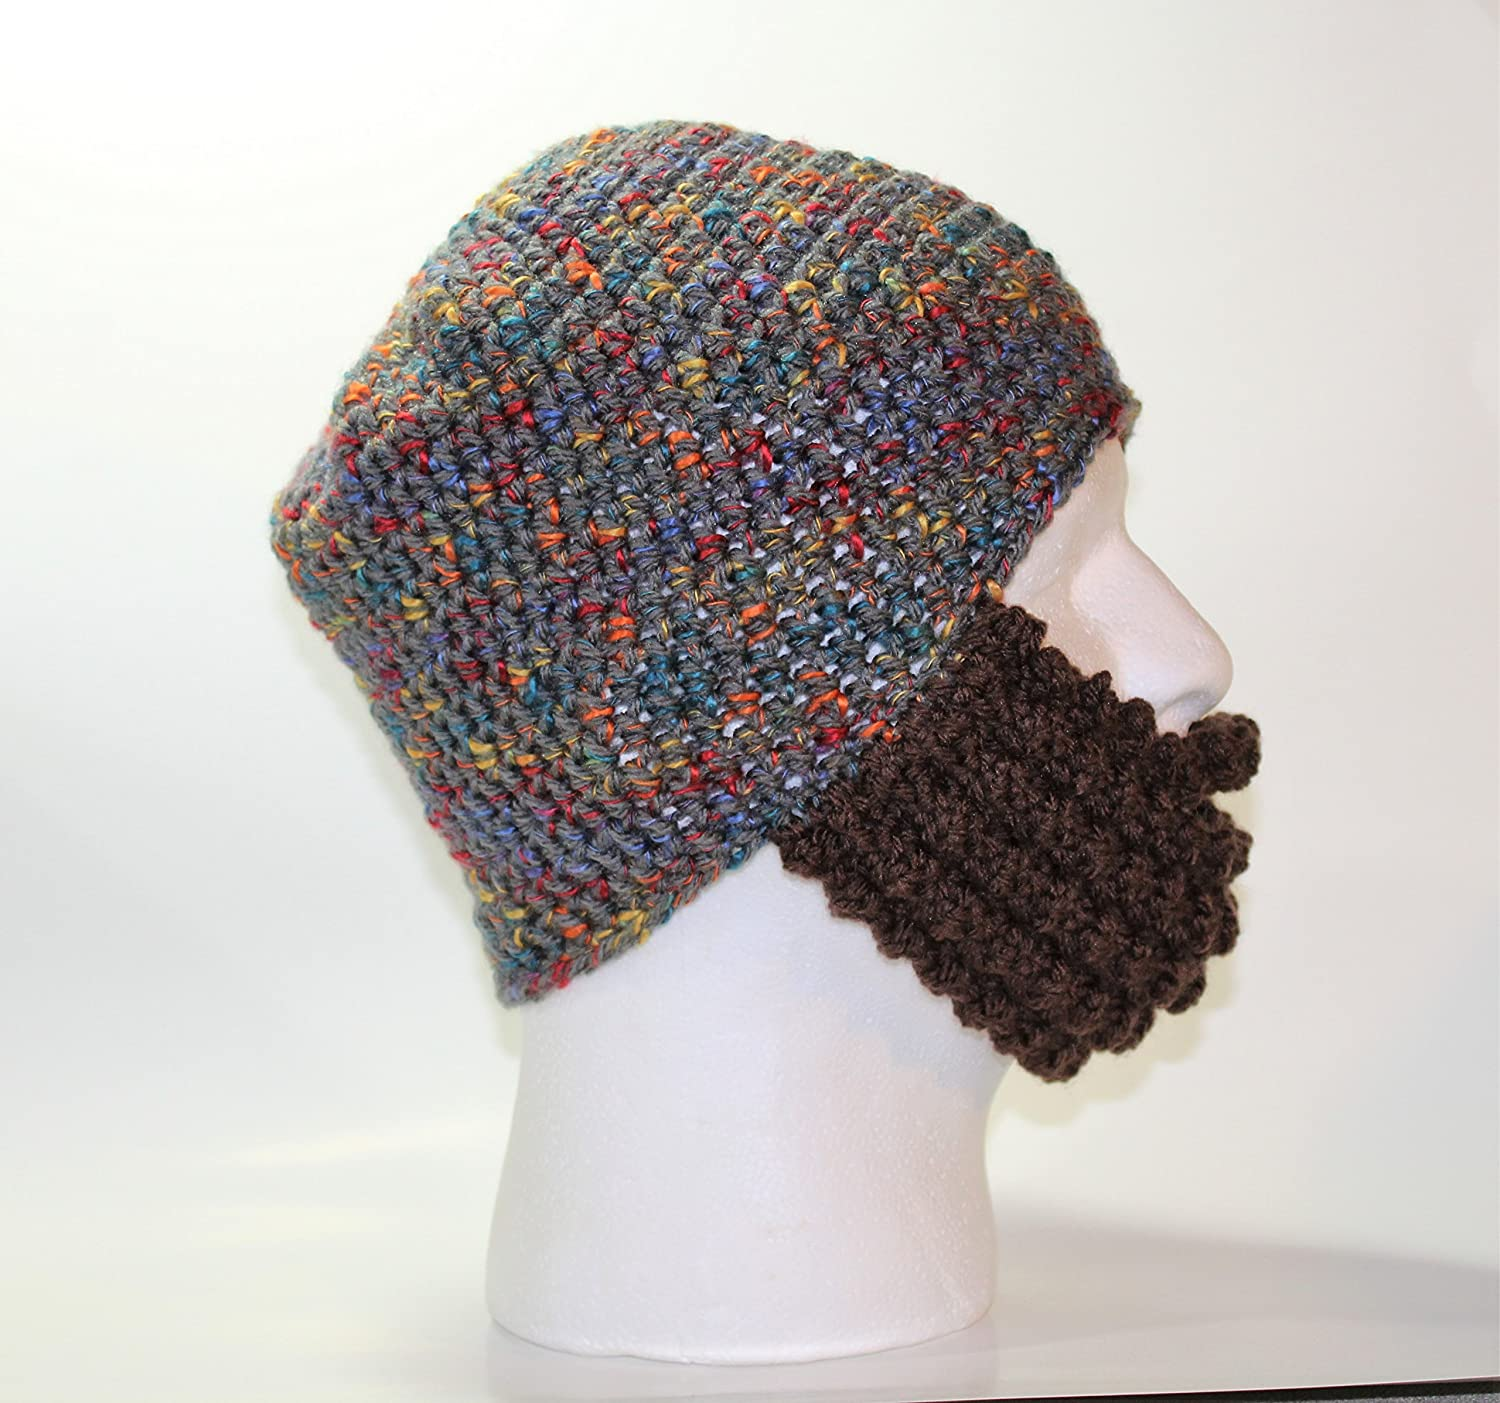 Amazon Handmade Crochet Bearded Hat In Grey With Multi Color